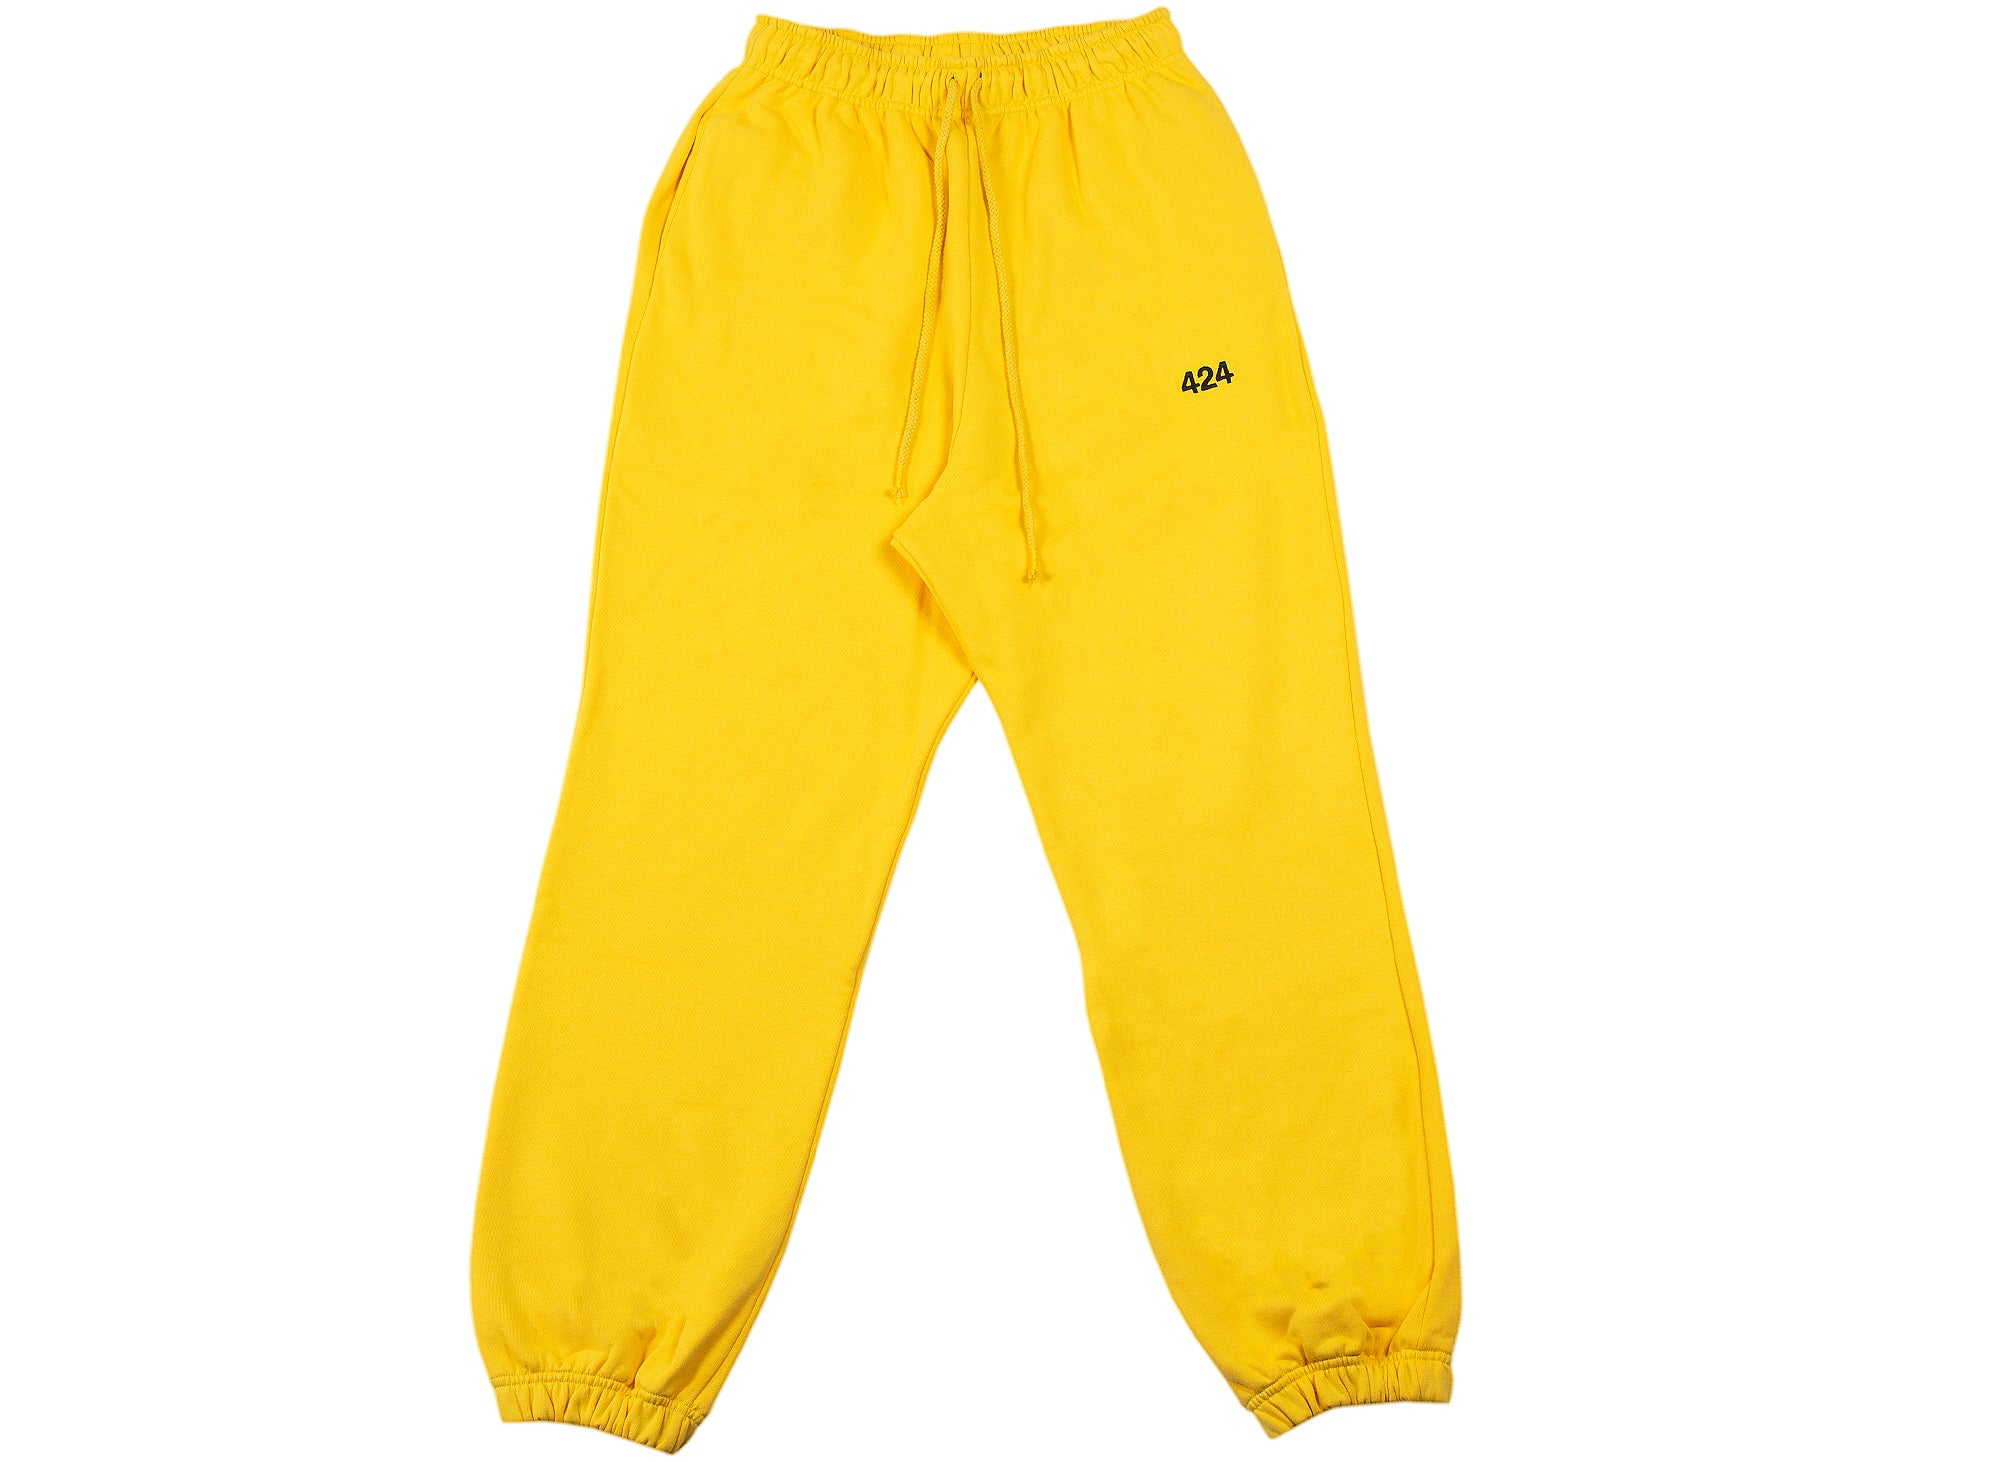 424 Logo Sweatpants in Yellow